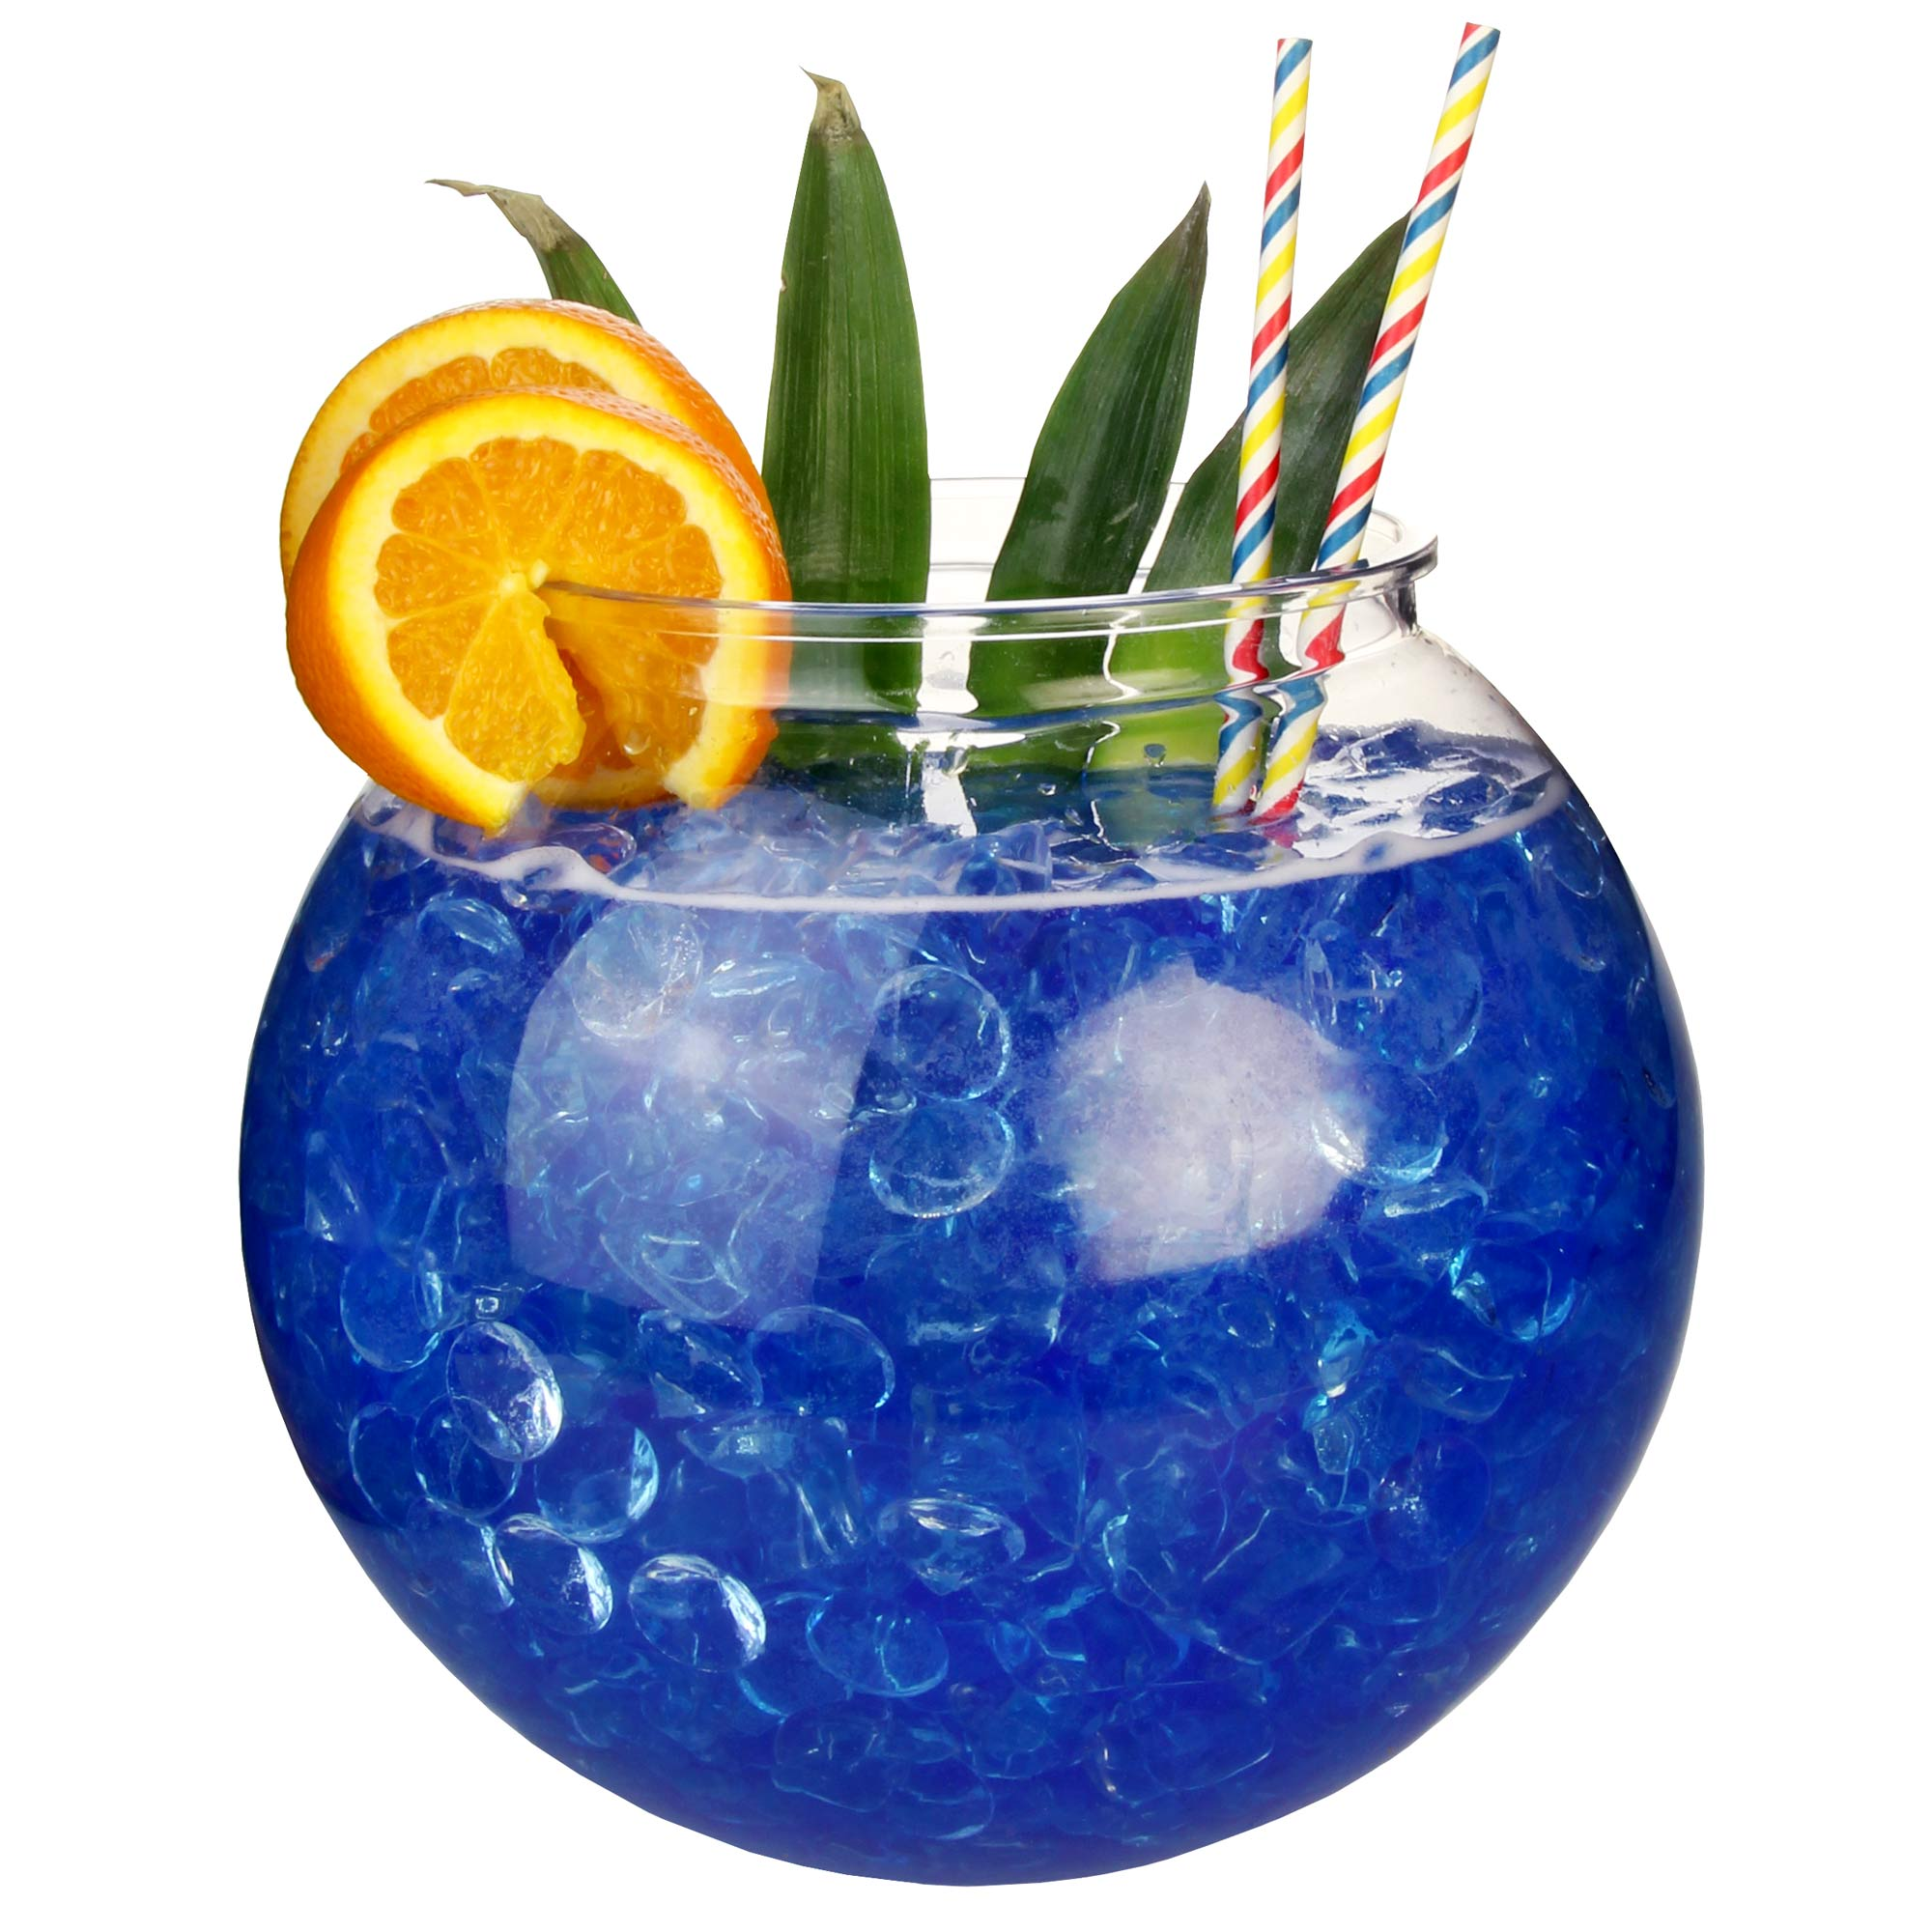 Xl 5 litre plastic cocktail fish bowl sharer at drinkstuff for Fish bowl drinks near me